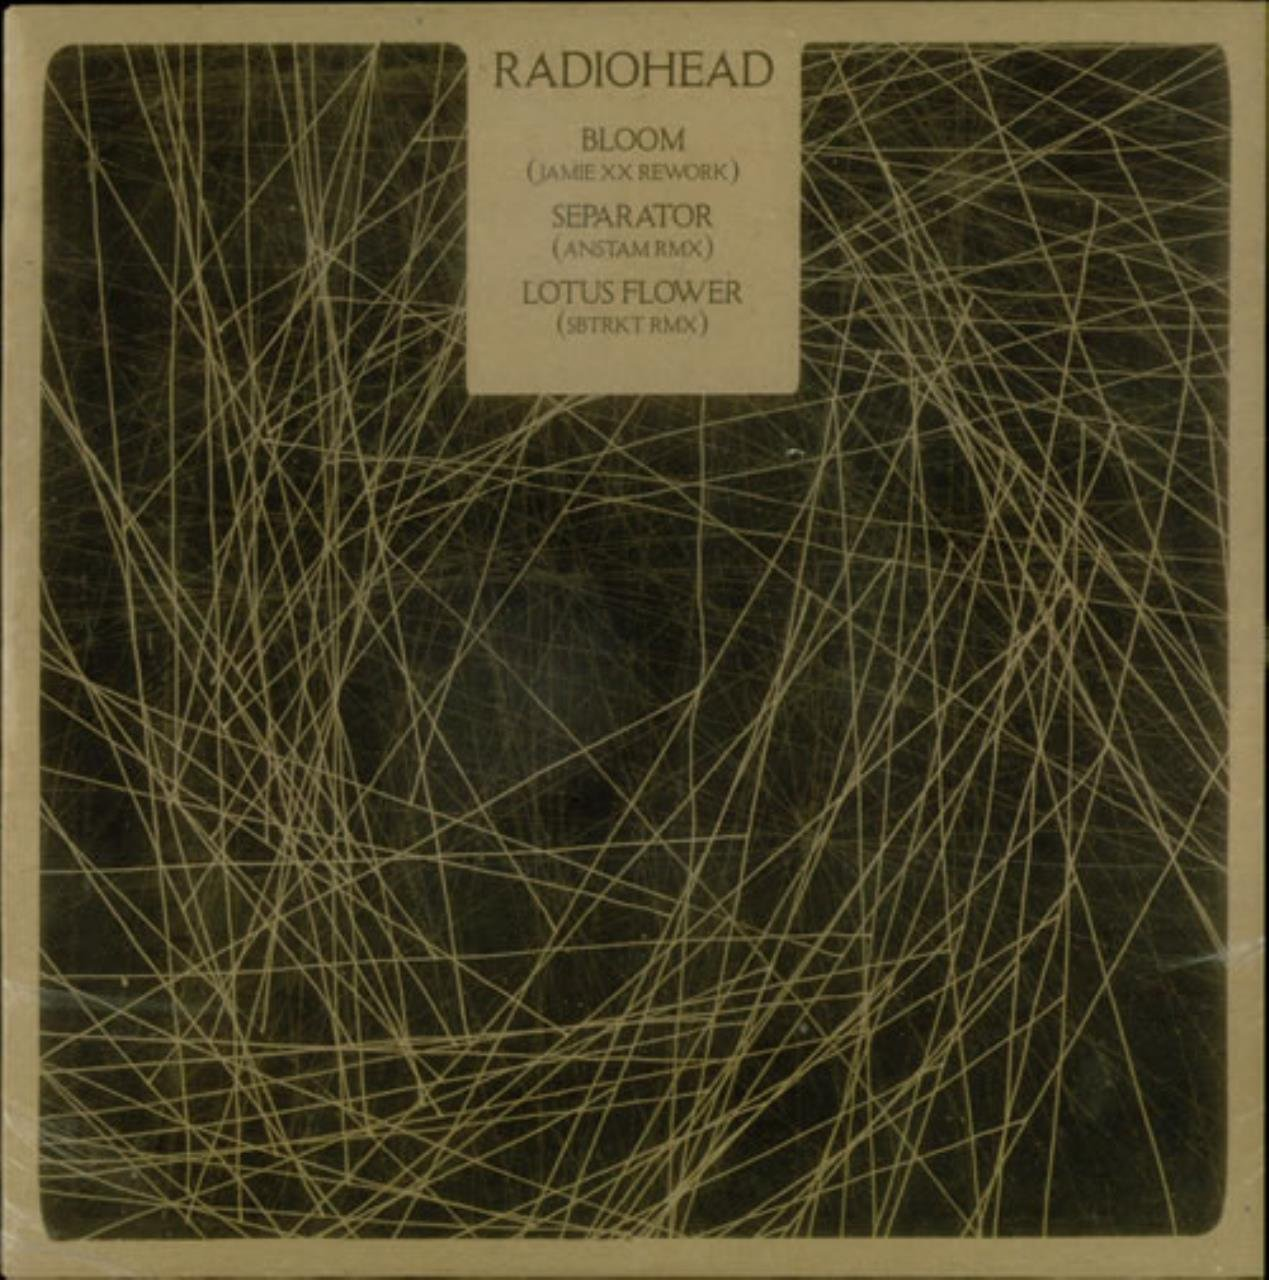 Radiohead Radiohead Remixes Bloom Separator Lotus Flow